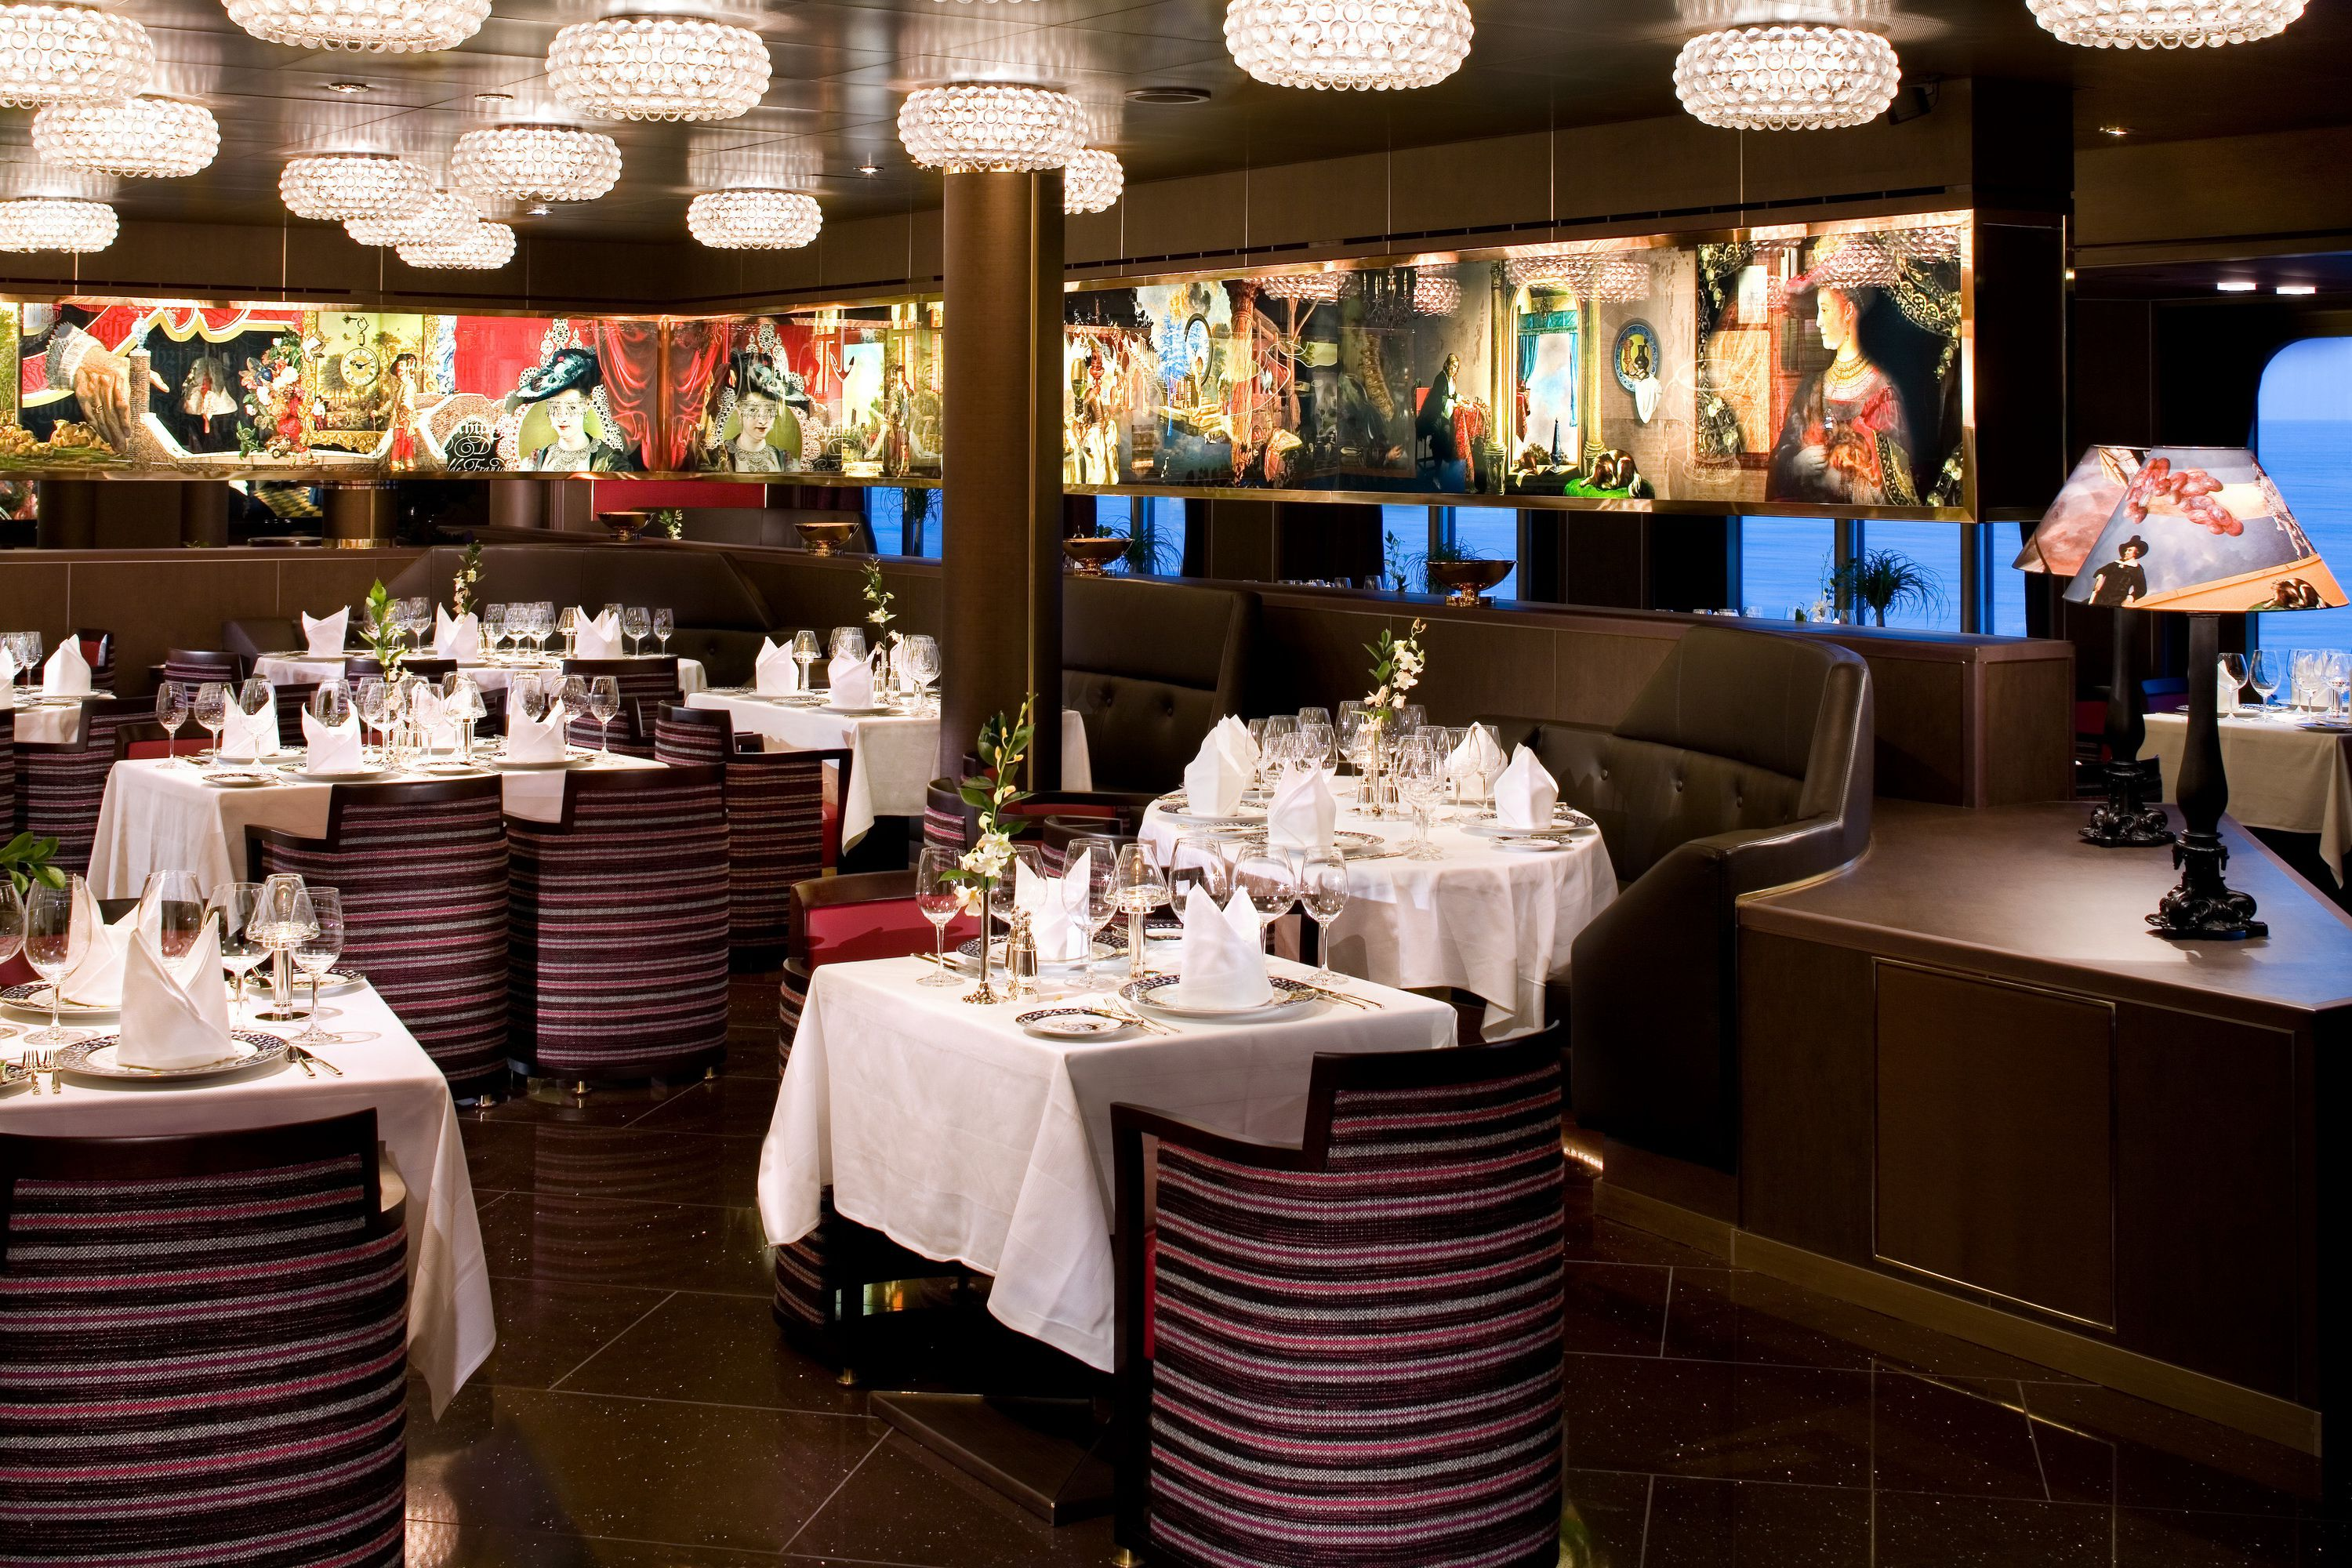 Holland America Line Eurodam Dining And Cuisine - Pinnacle grill